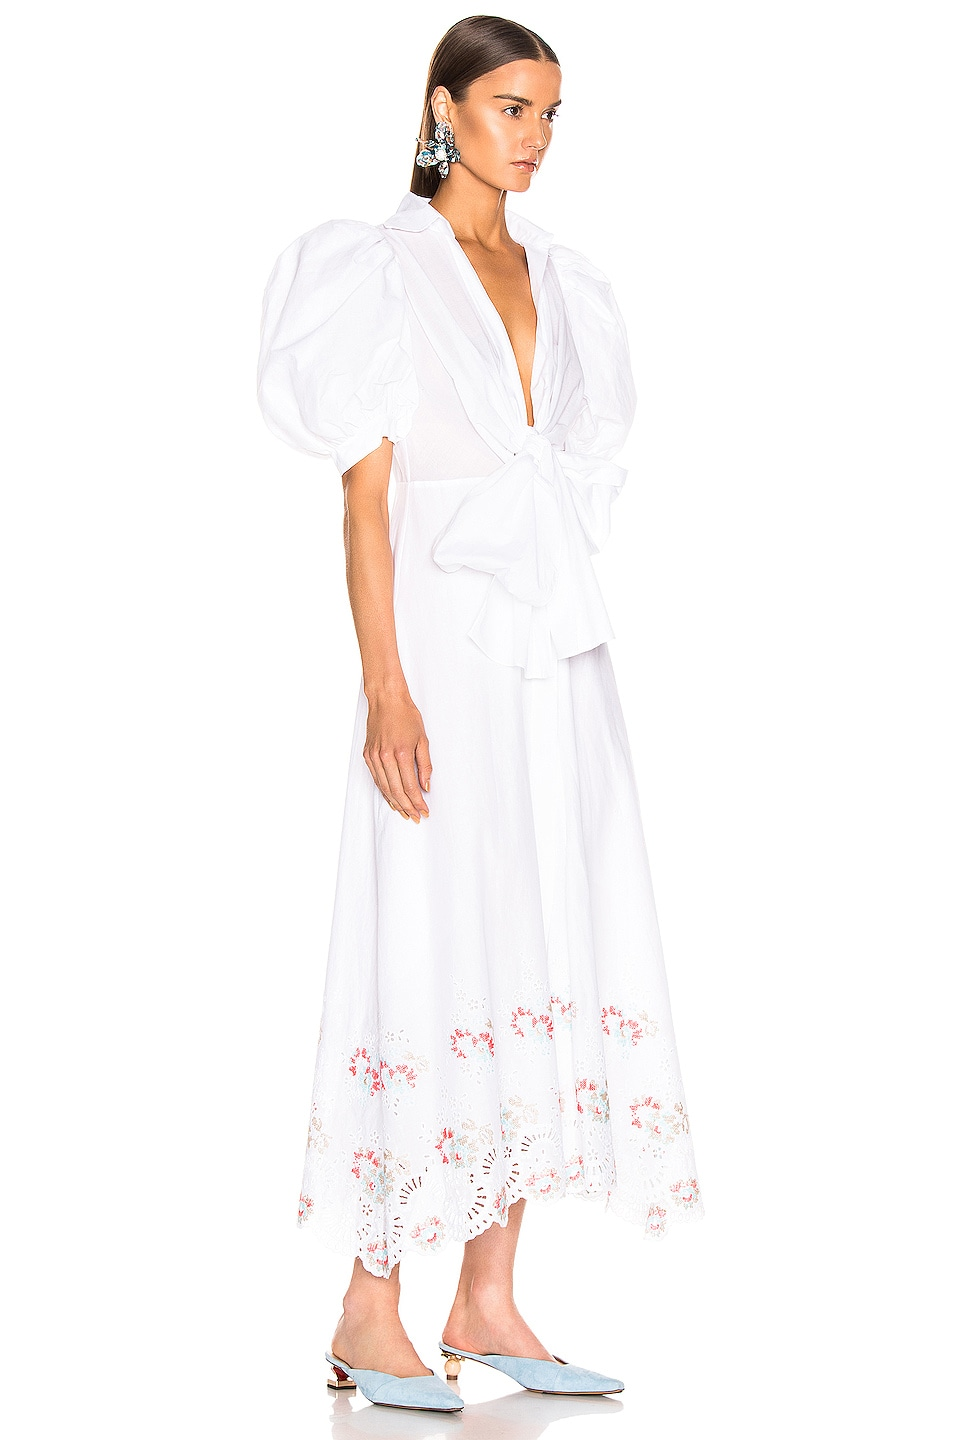 Image 2 of SILVIA TCHERASSI for FWRD Embroidered Assunta Dress in Floral White